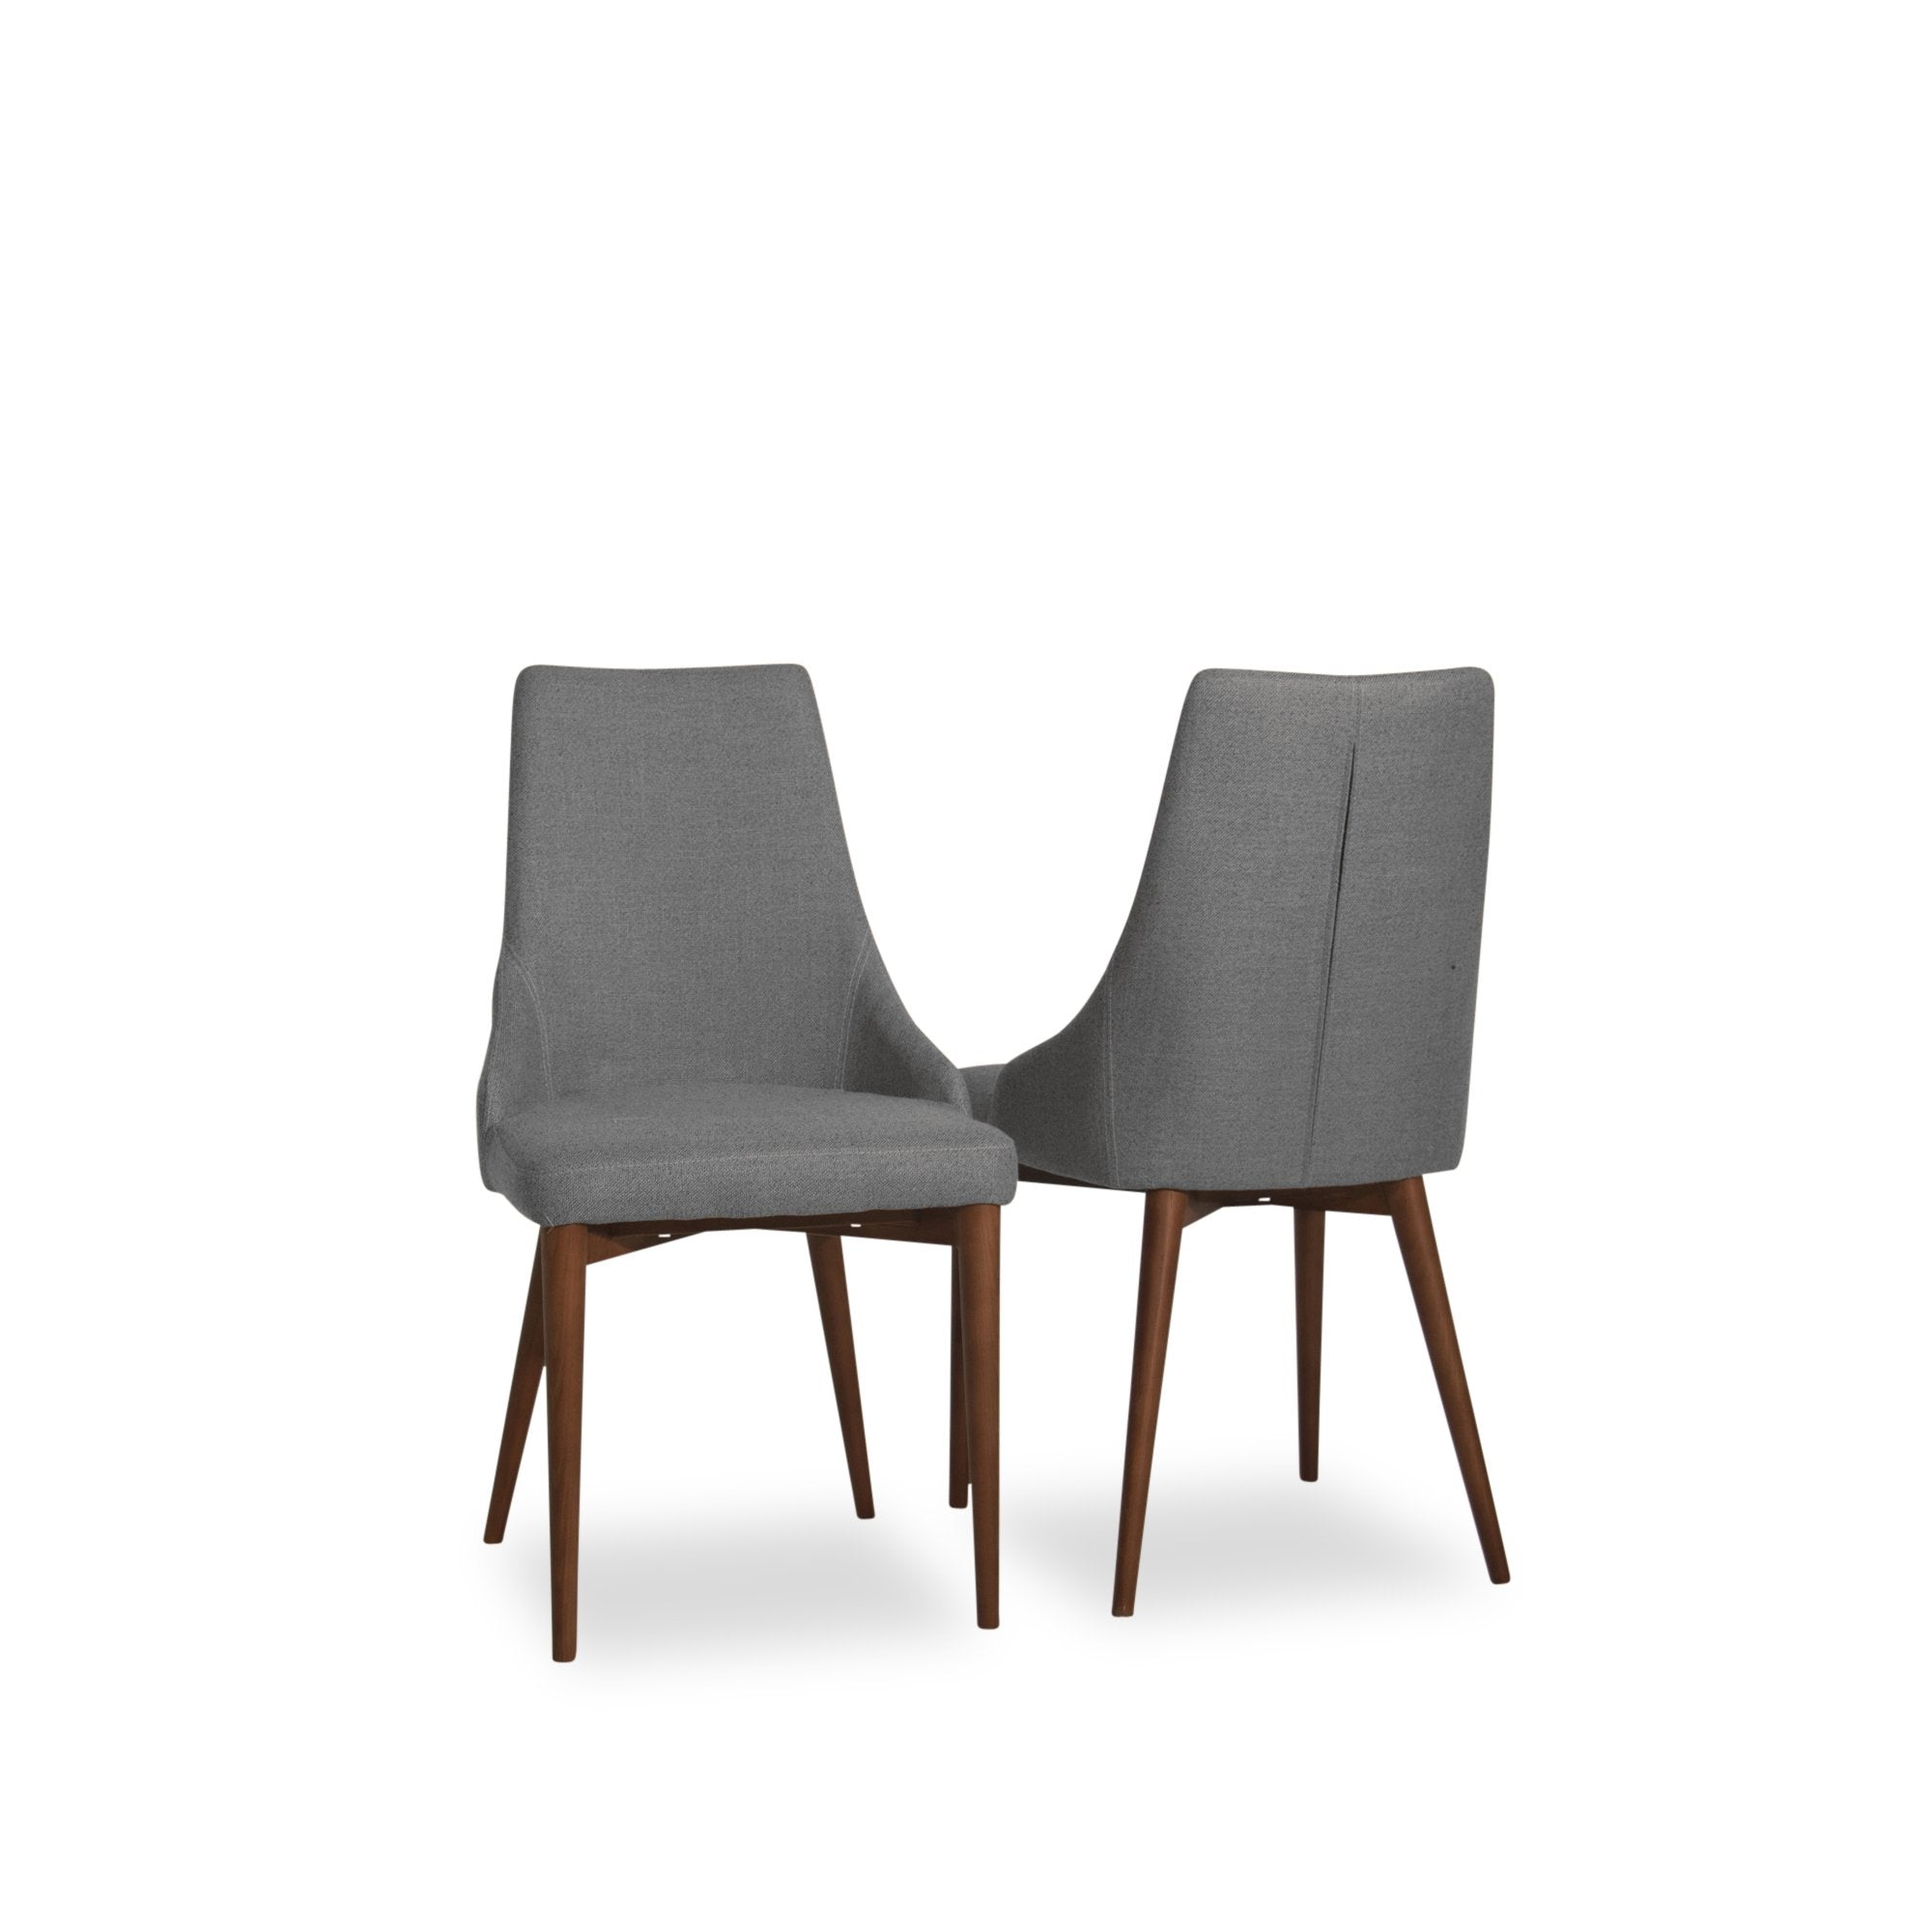 Gains Upholstered Dining Chairs Cheap Furniture Stores In Houston Ashcroftimports Com